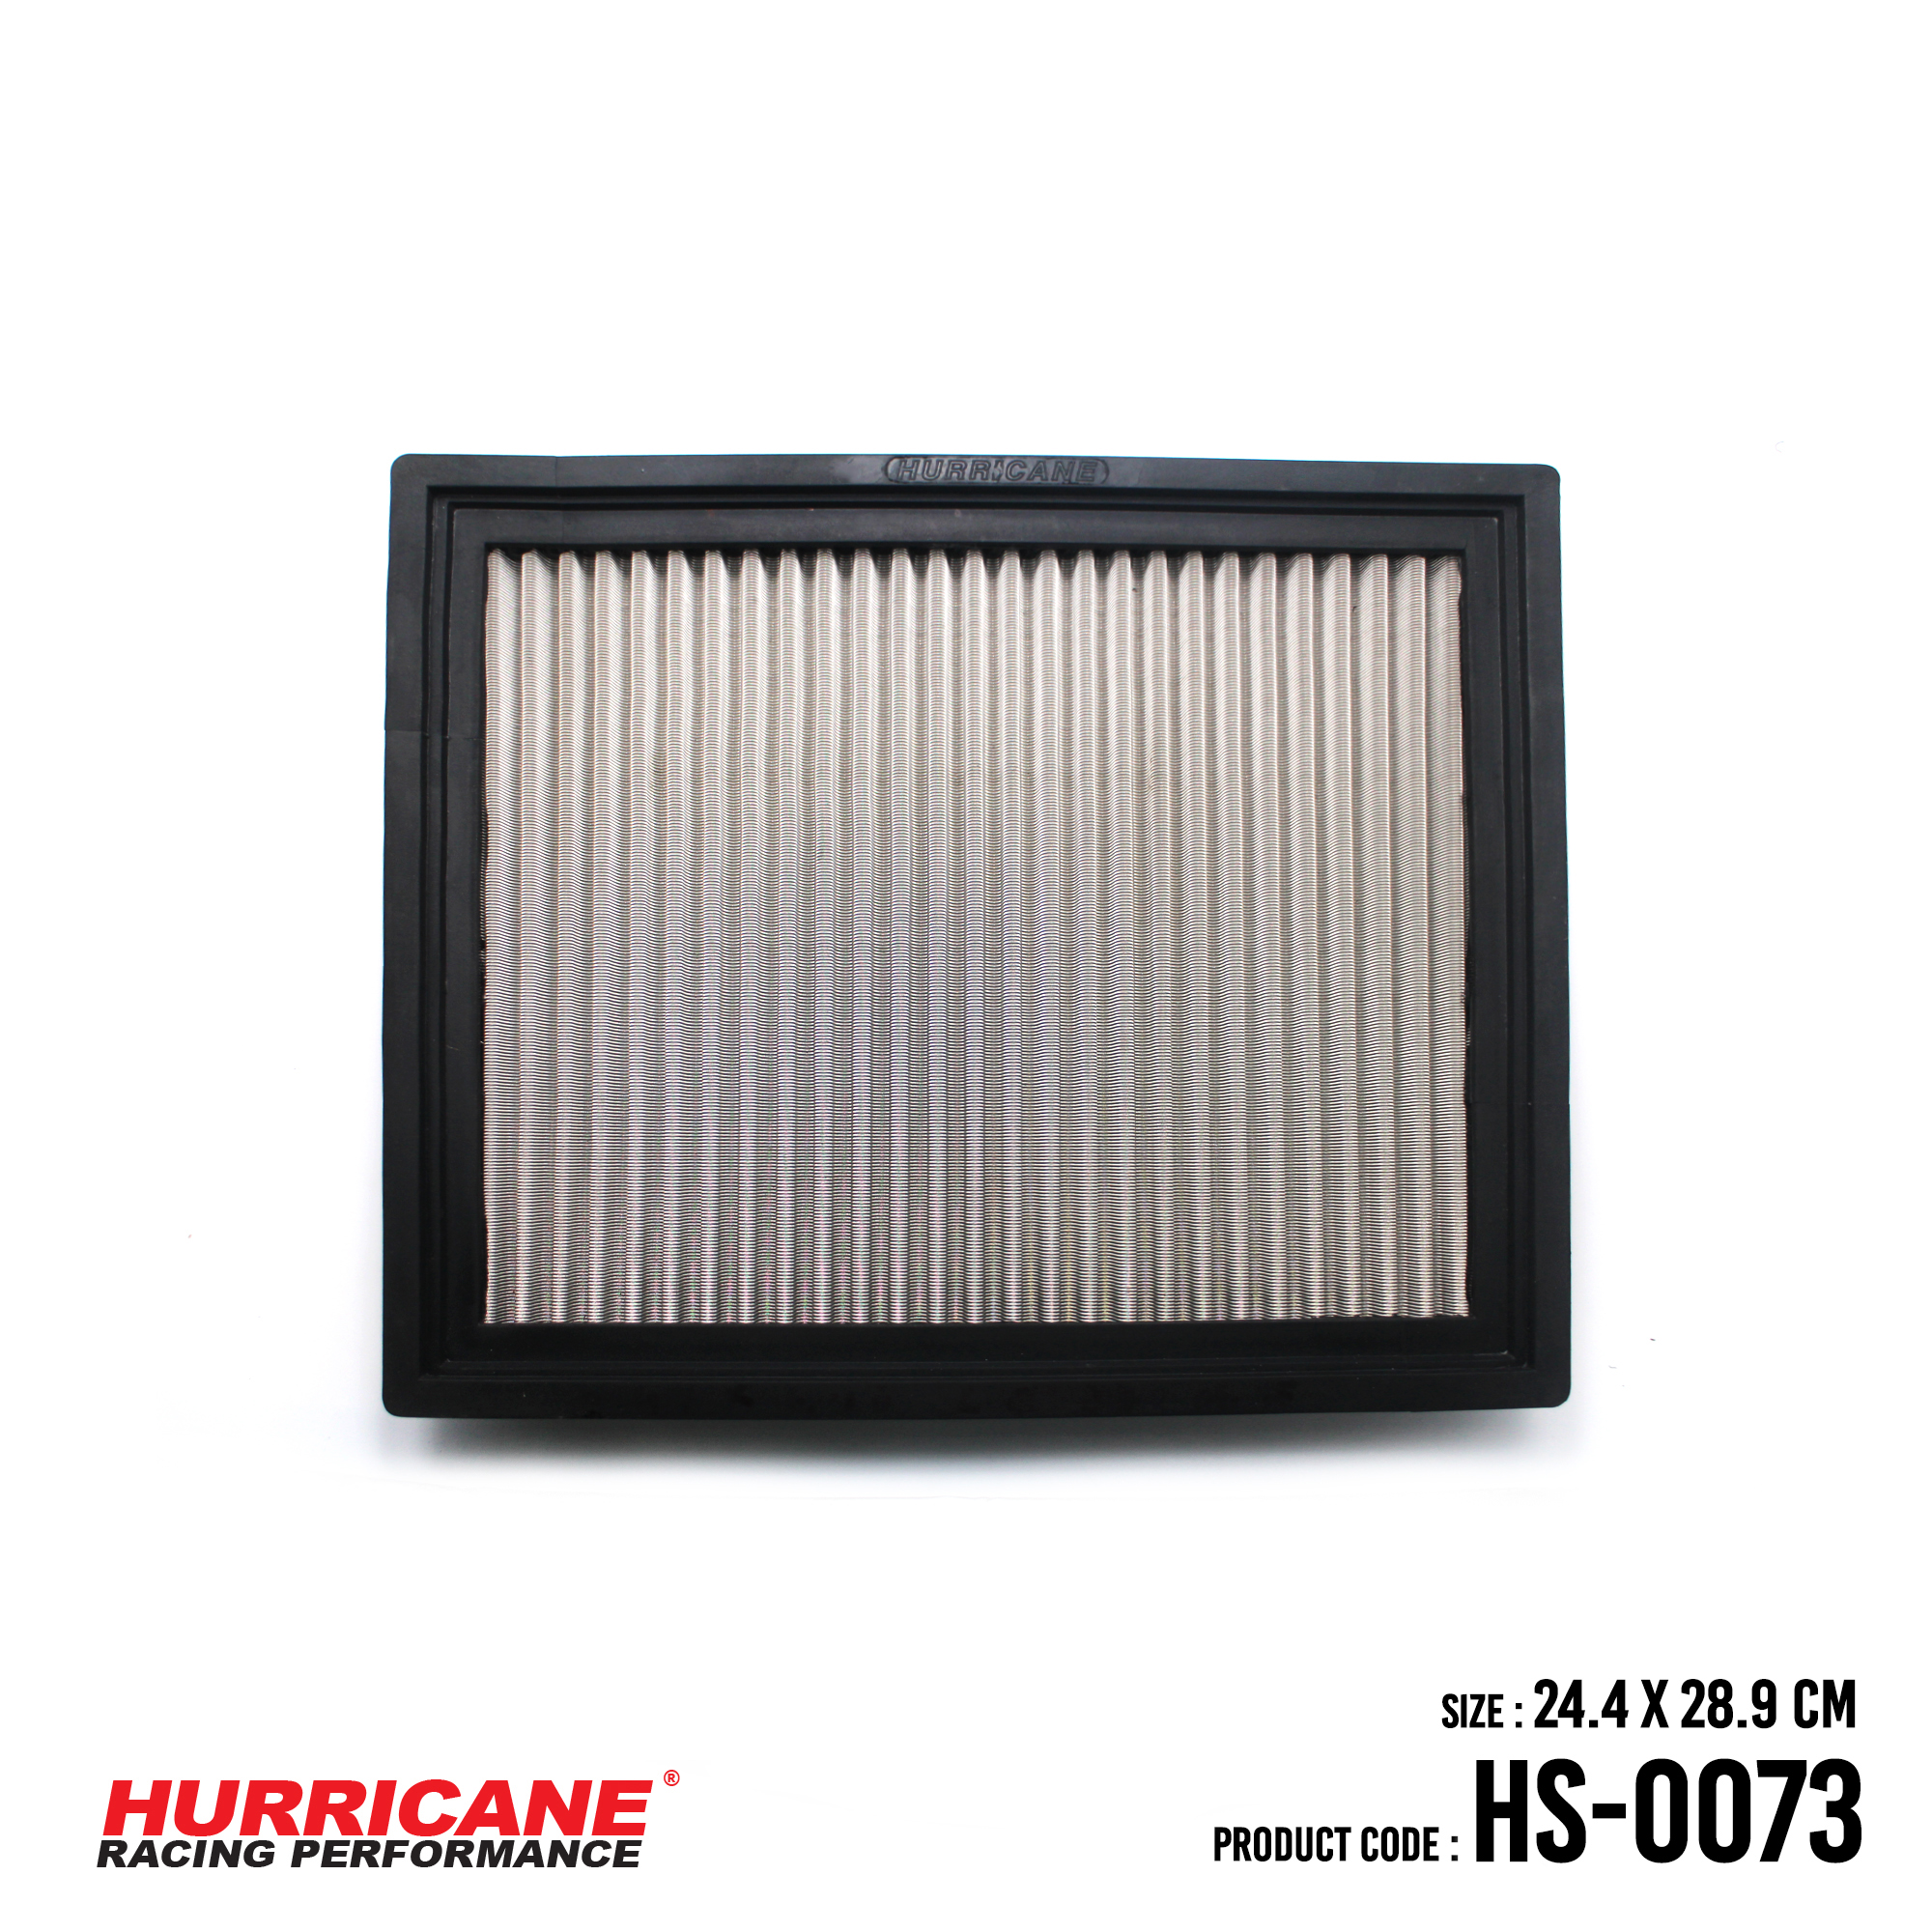 HURRICANE STAINLESS STEEL AIR FILTER FOR HS-0073 Jeep